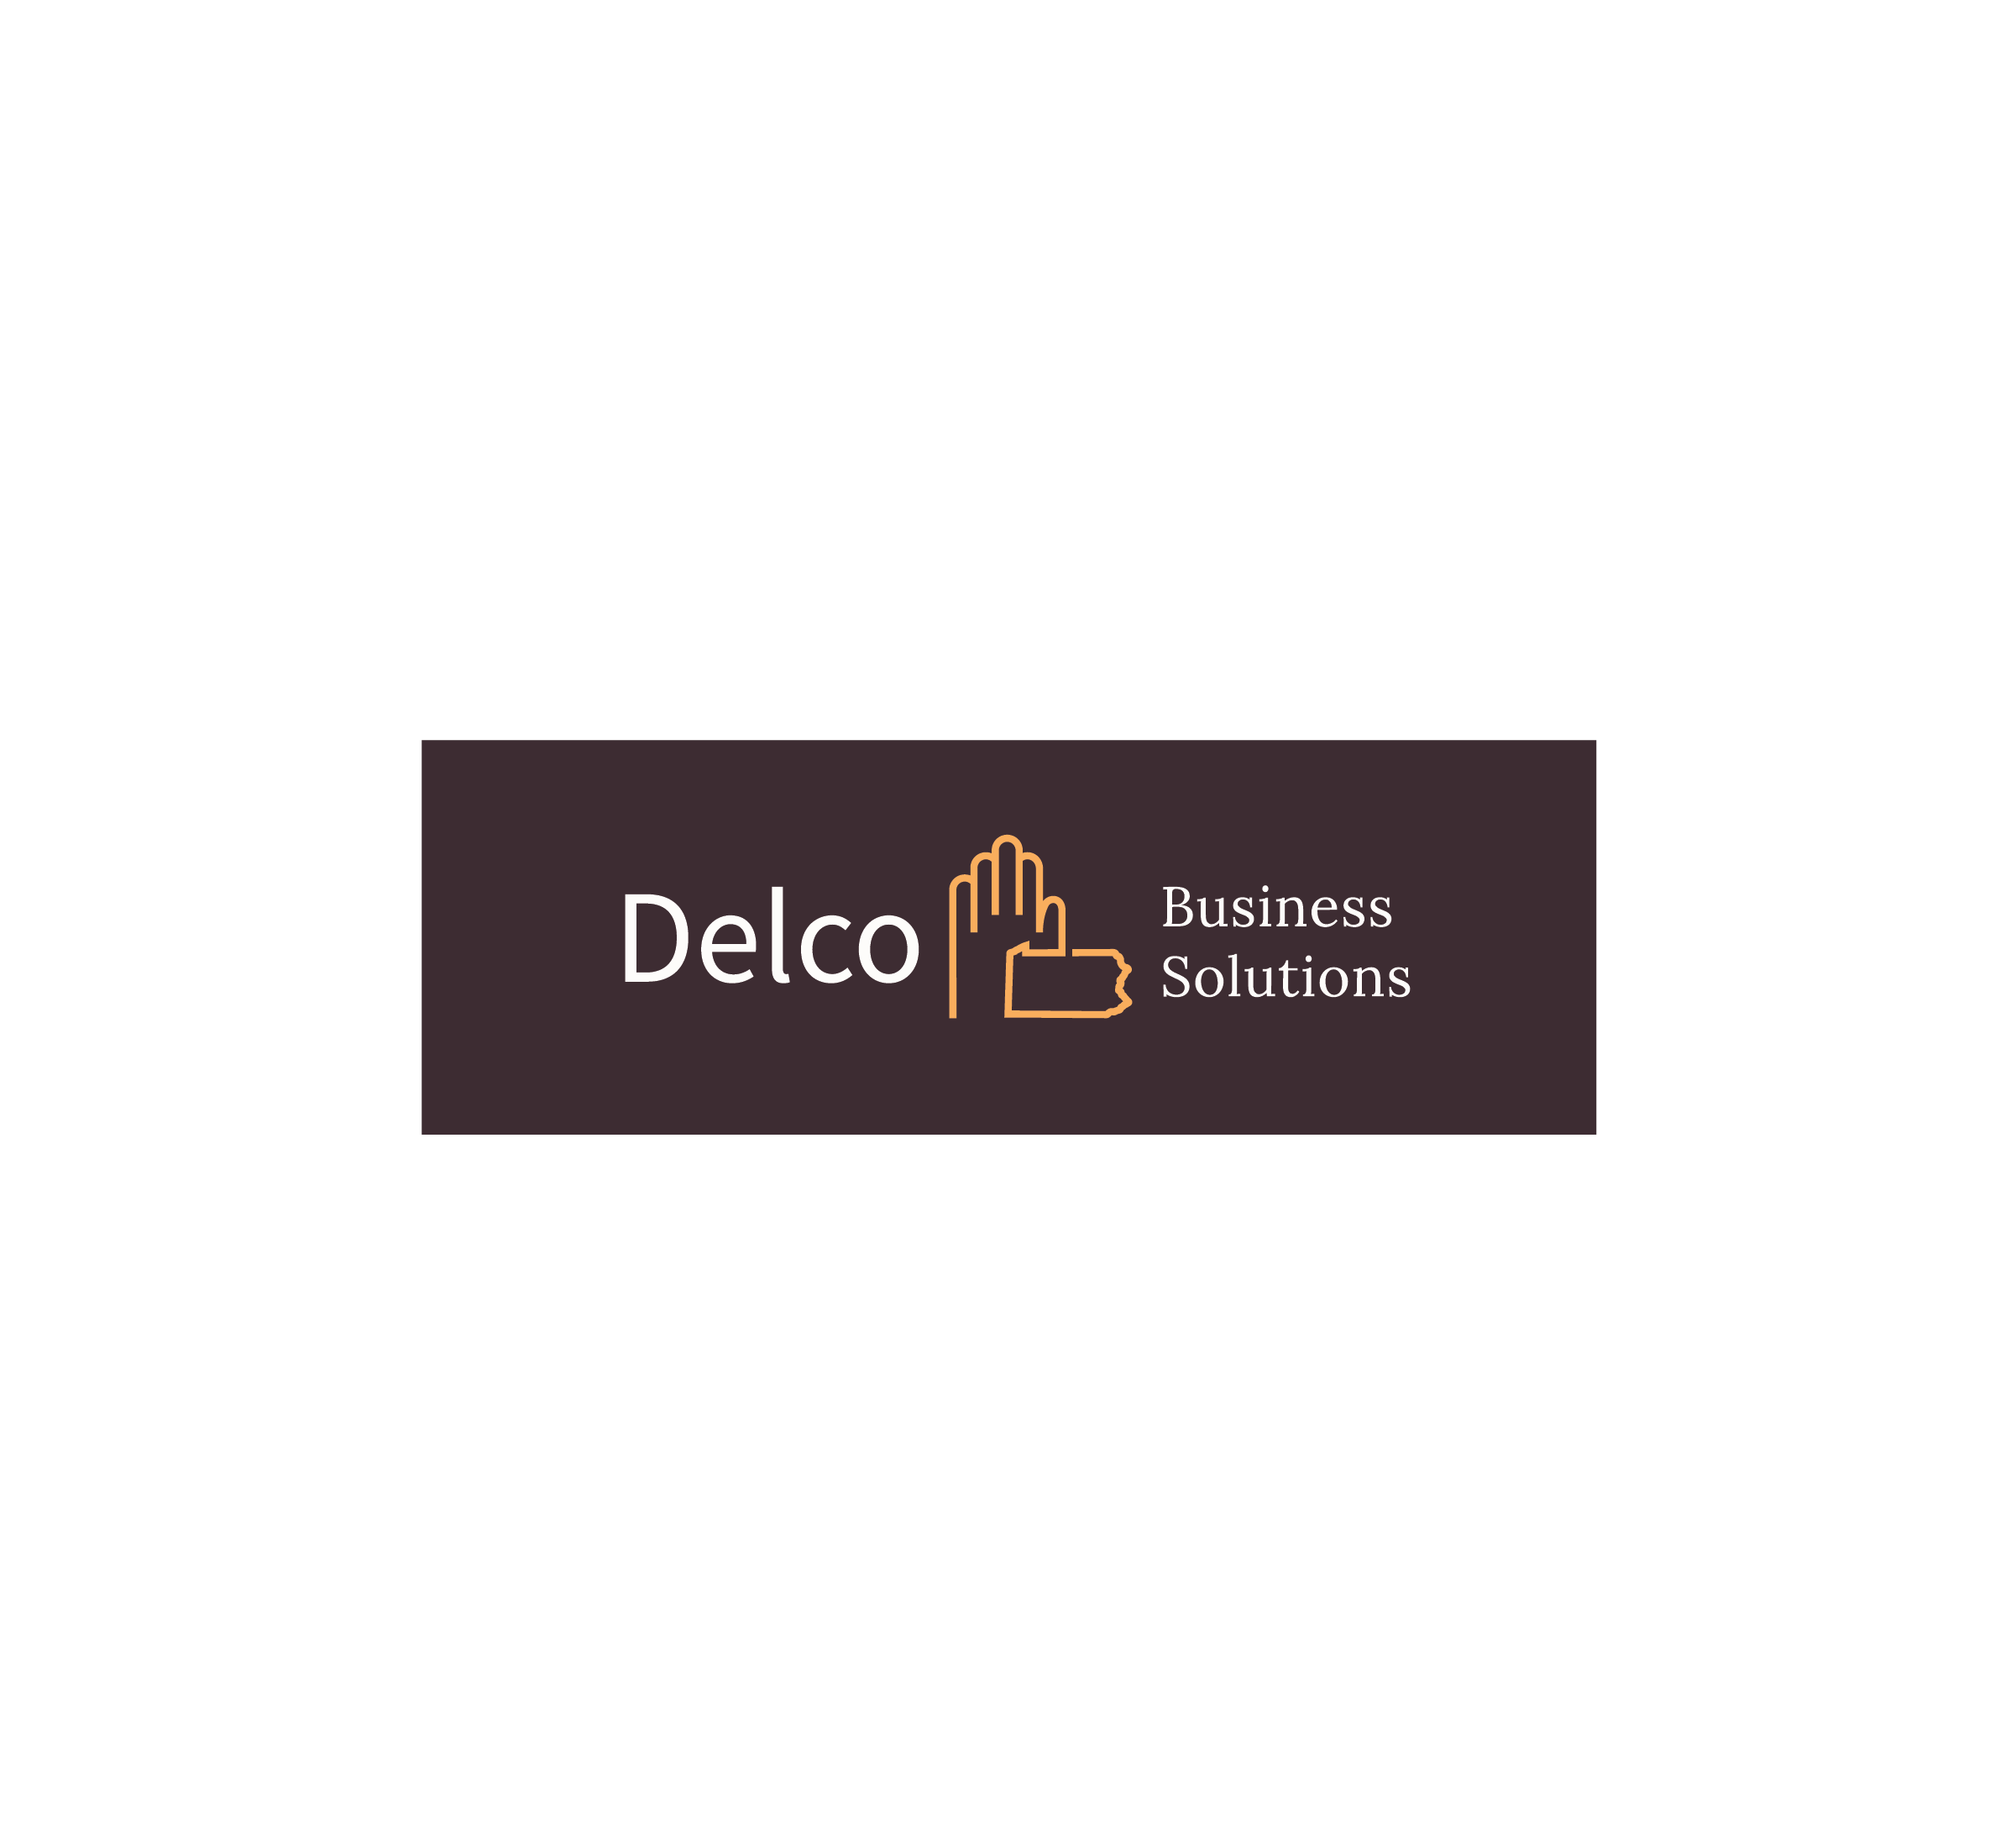 Delco Business Solutions logo